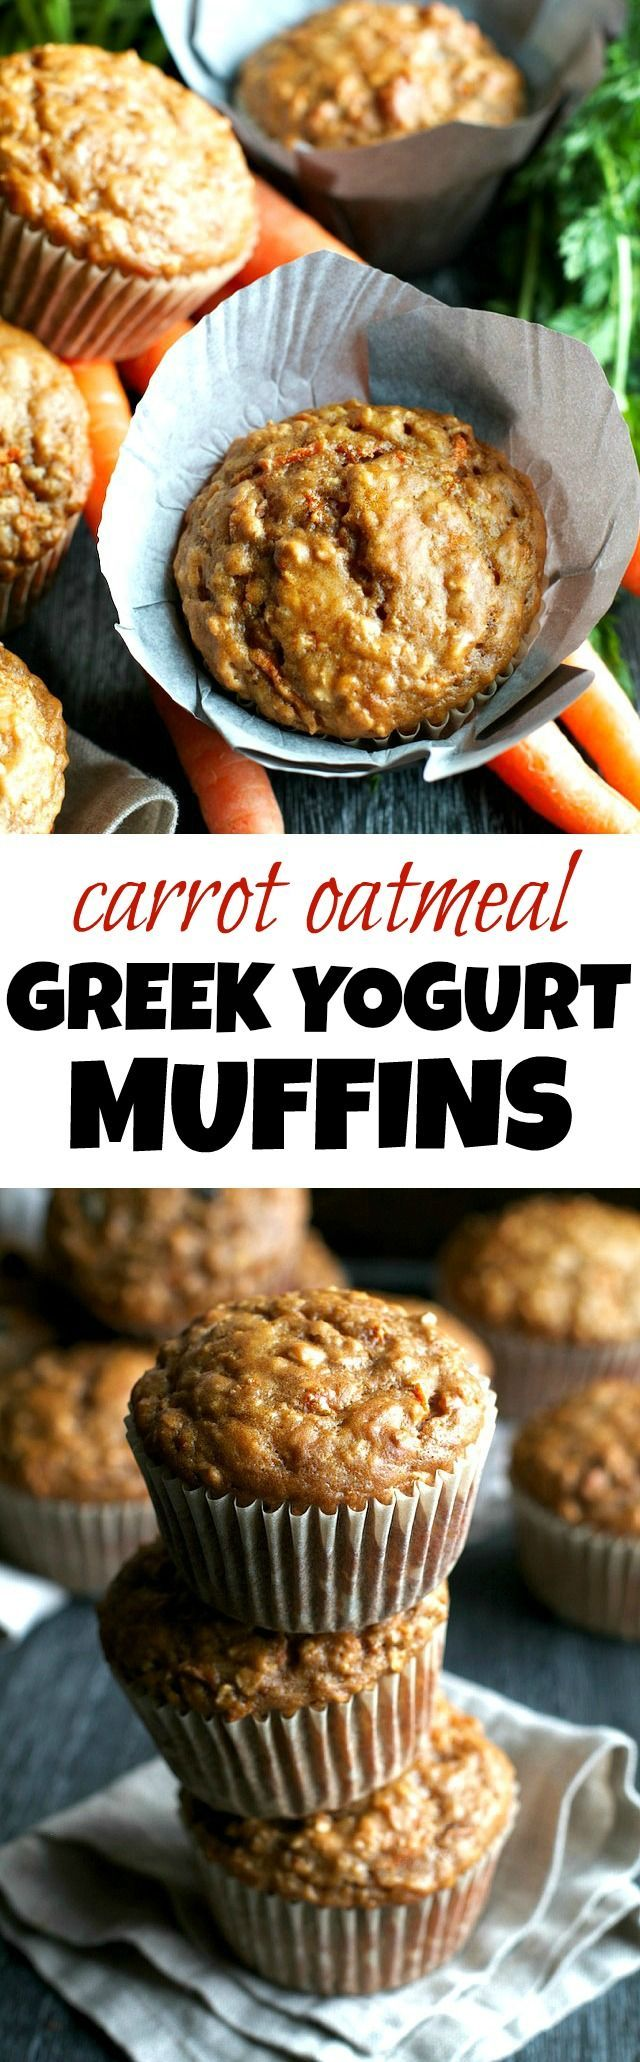 You won't find any butter or oil in these ridiculously soft and tender Carrot Oatmeal Greek Yogurt Muffins! What you will find is plenty of naturally sweetened, carrot-y goodness in each bite! | runningwithspoons... #healthy #muffins #breakfast #snack